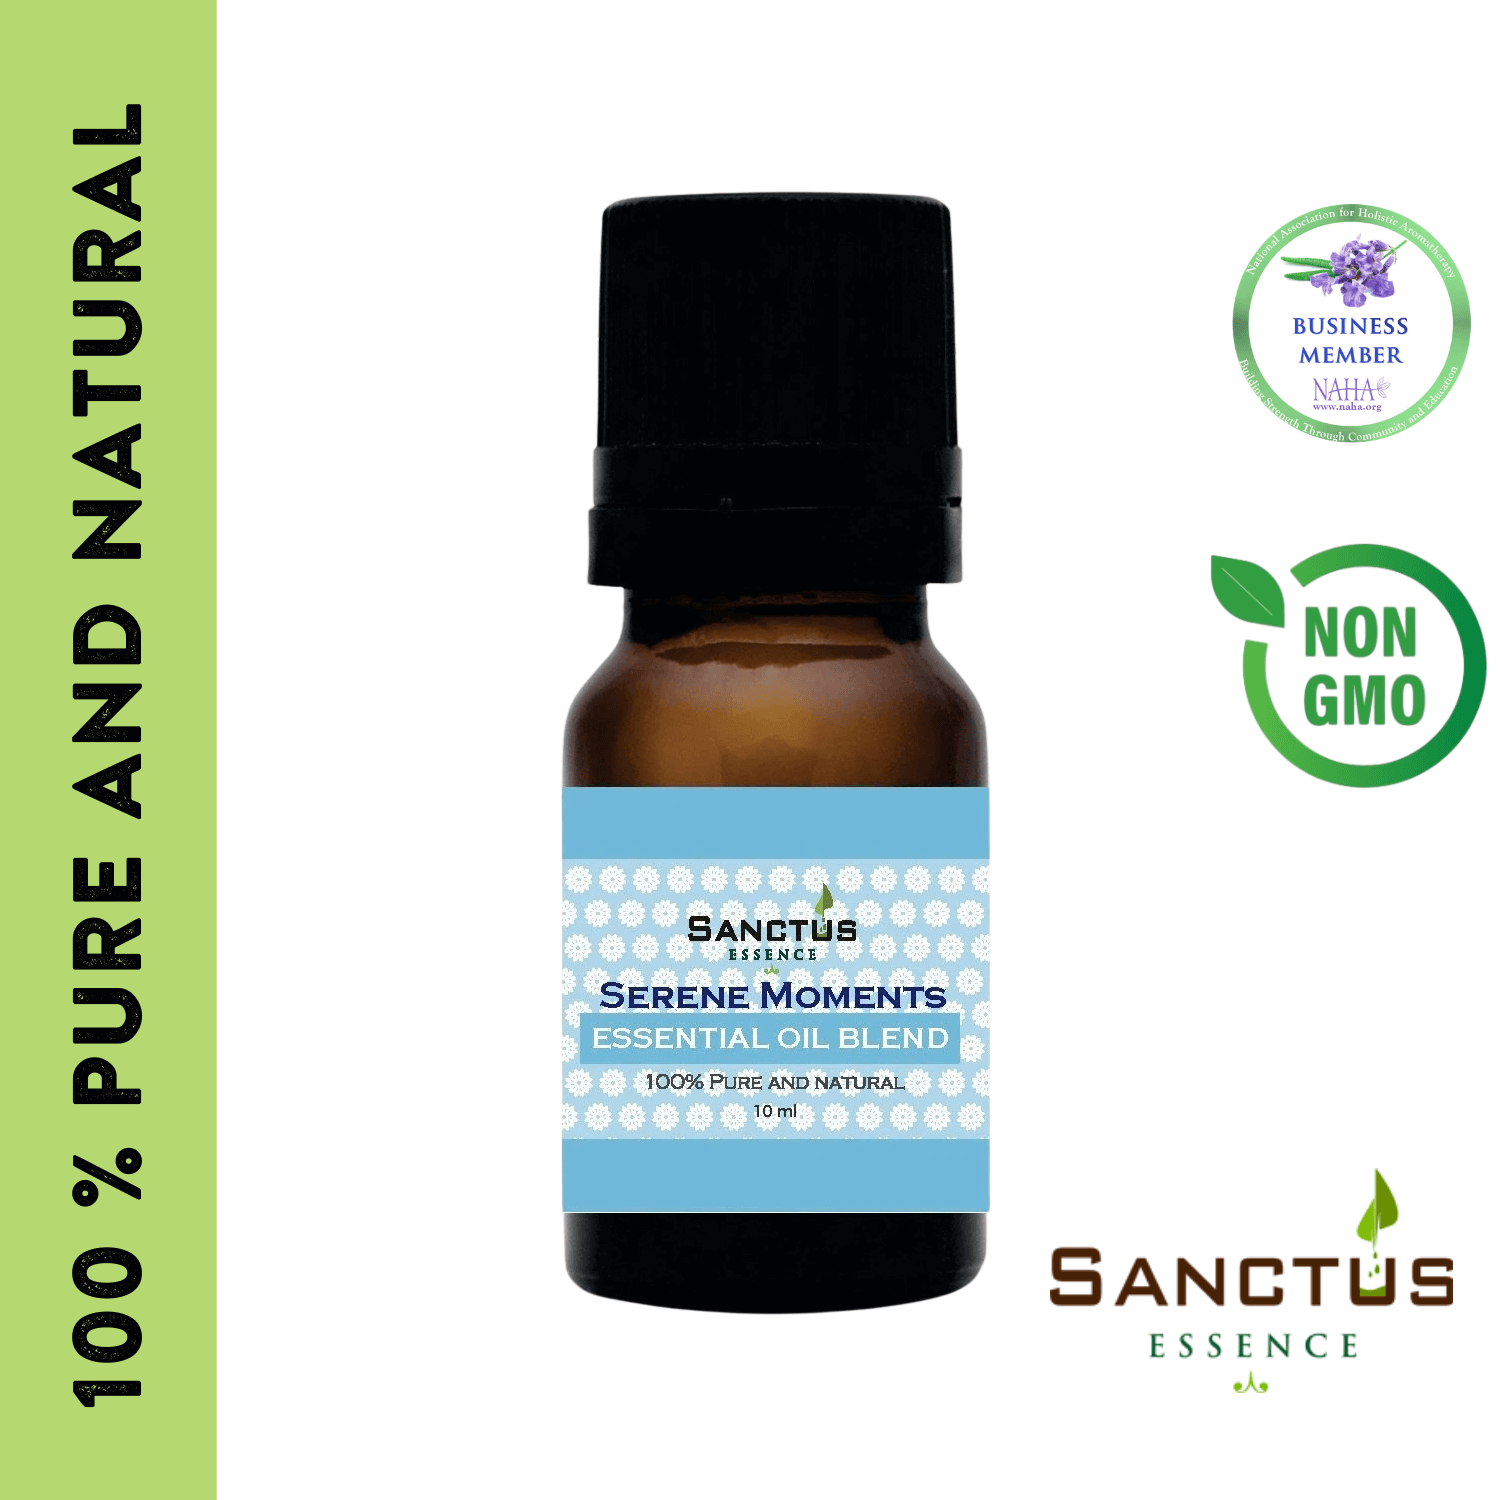 Serene Moments Essential Oil Blend